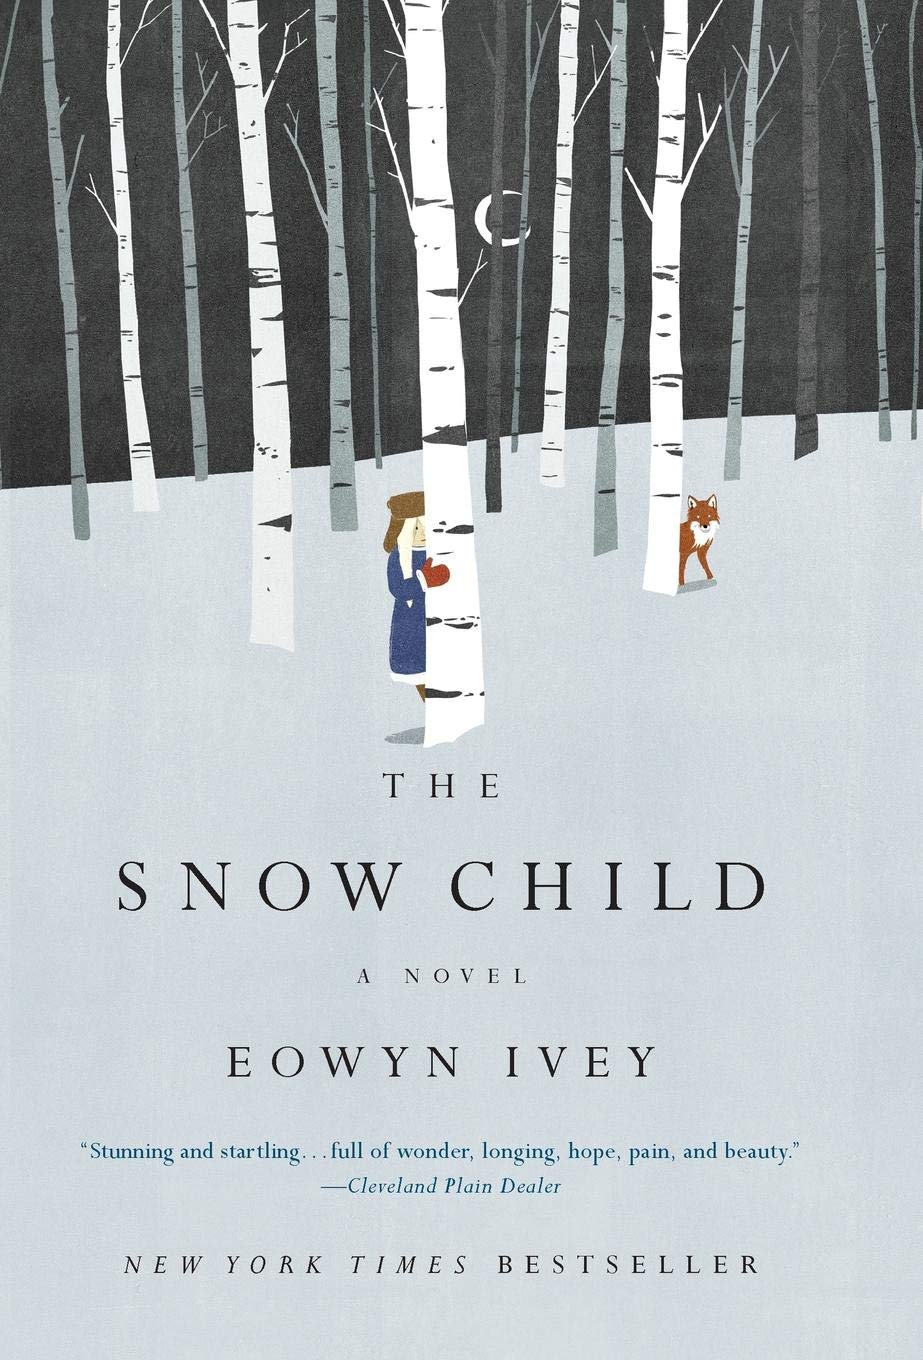 Book Discussion: The Snow Child, by Eowyn Ivey